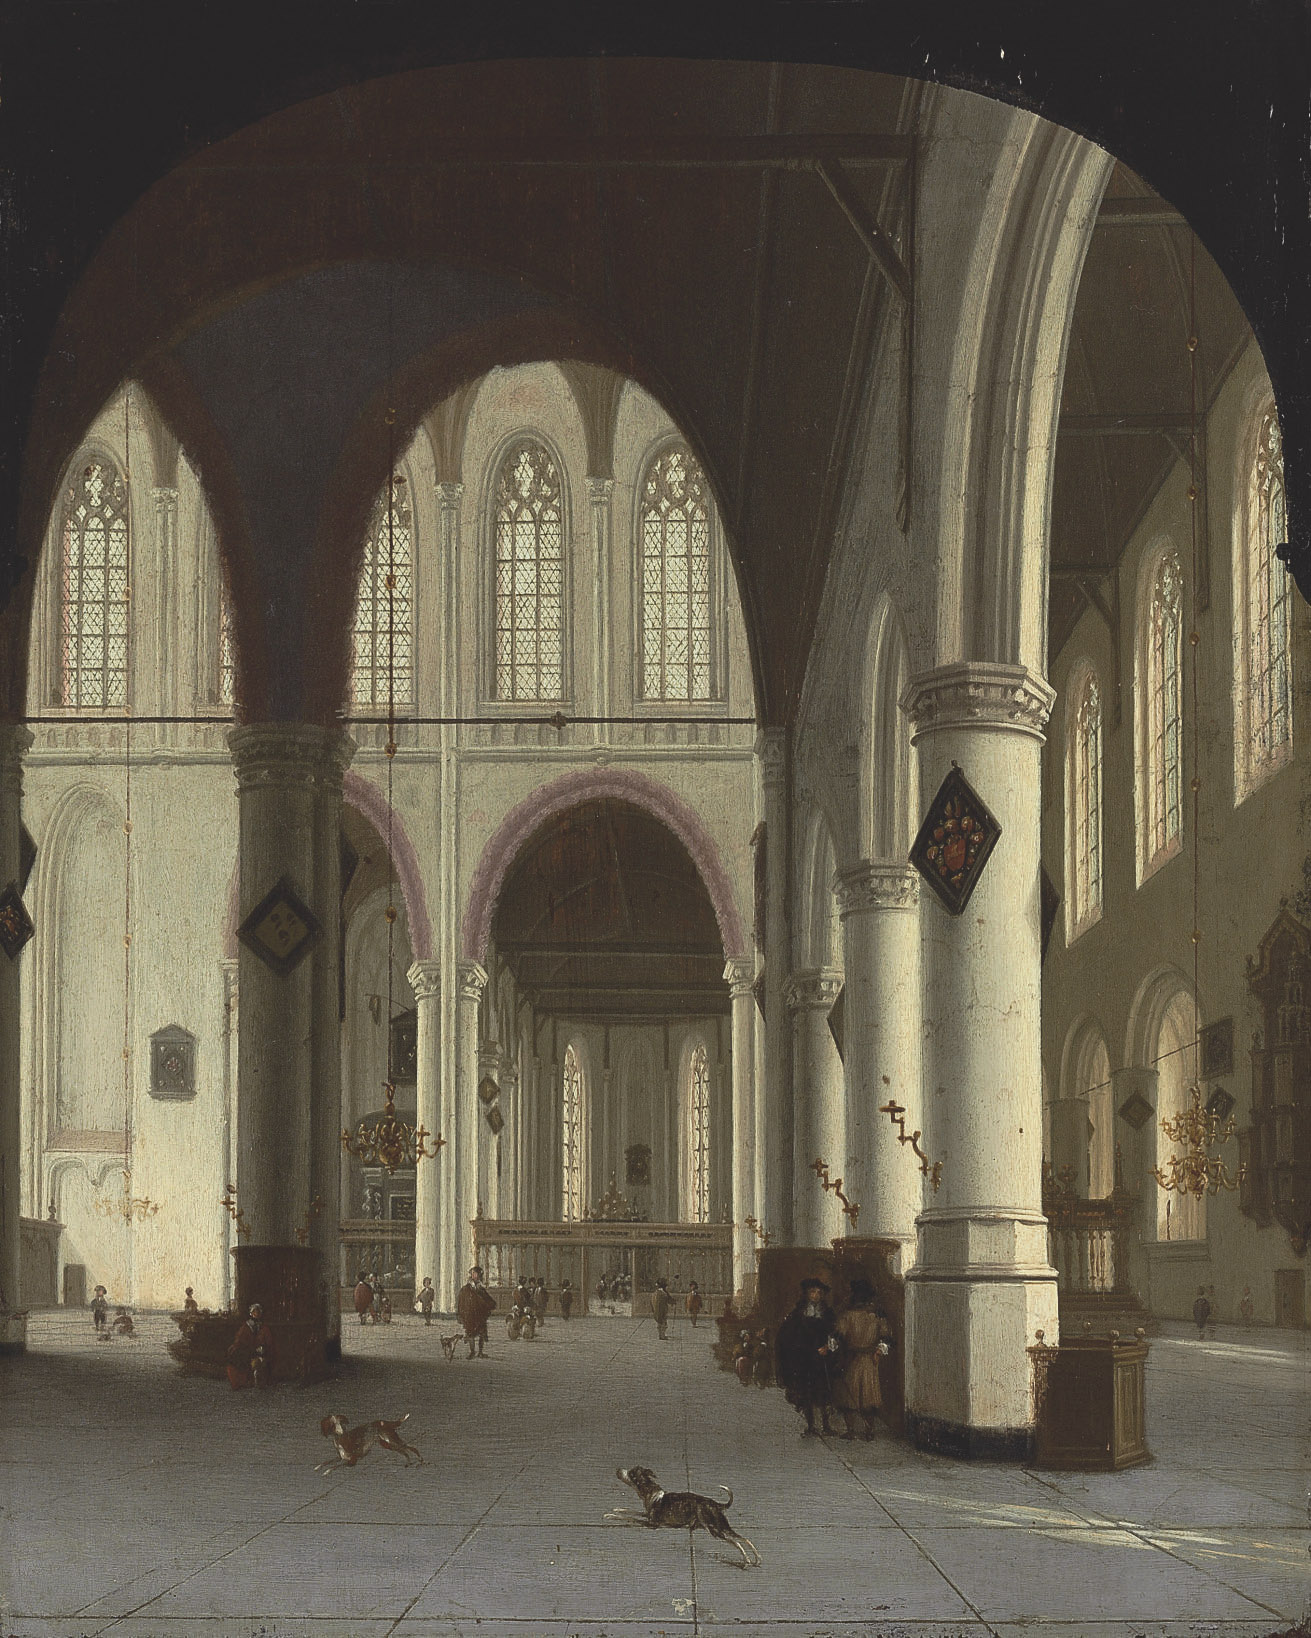 Interior of the Oude Kerk, Delft